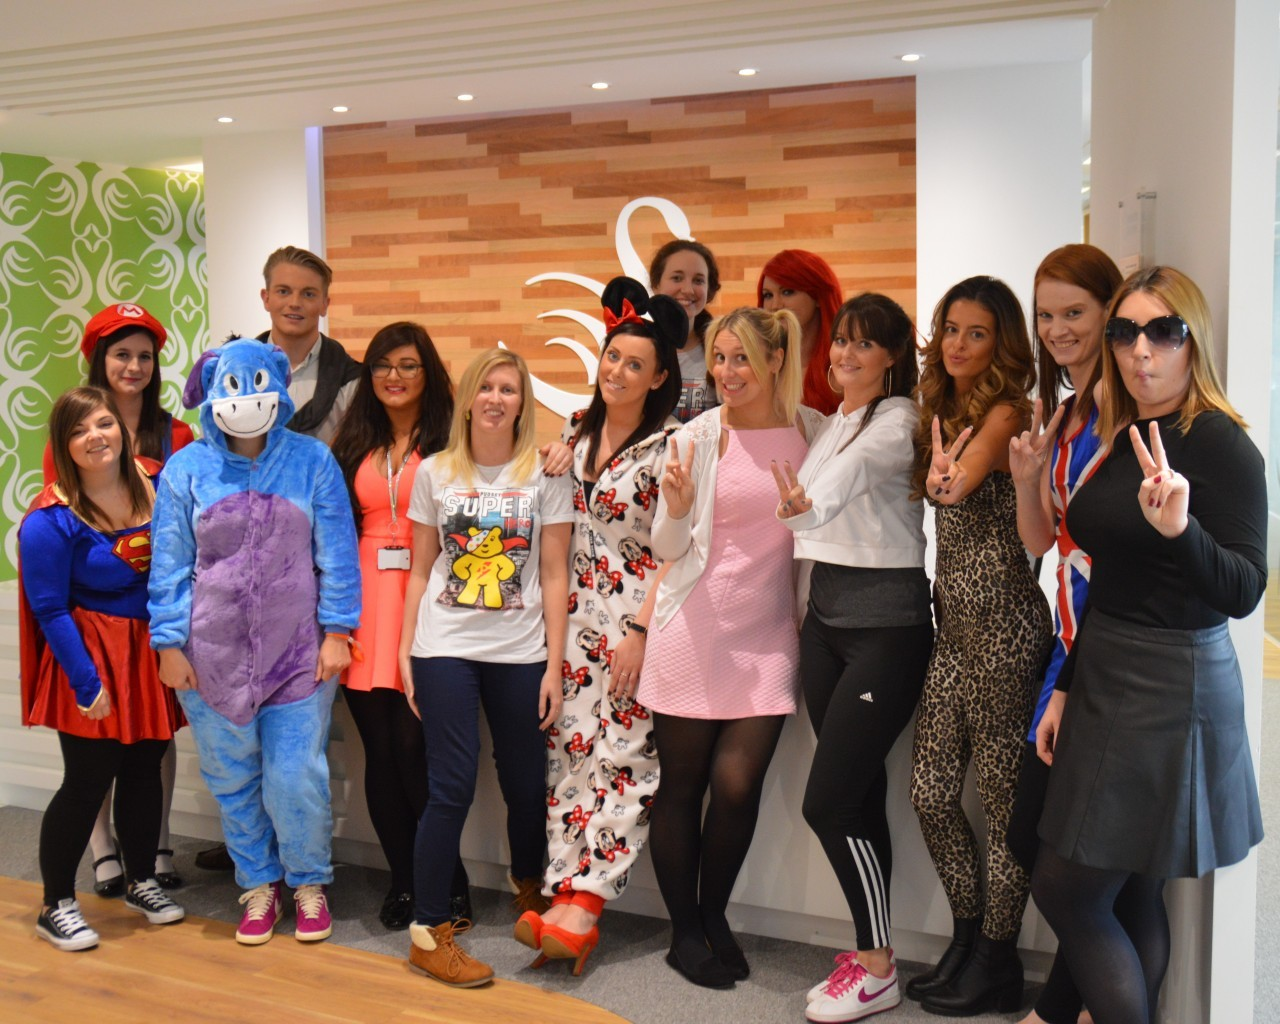 Swanstaff Recruitment dress up as their childhood heros for children in need